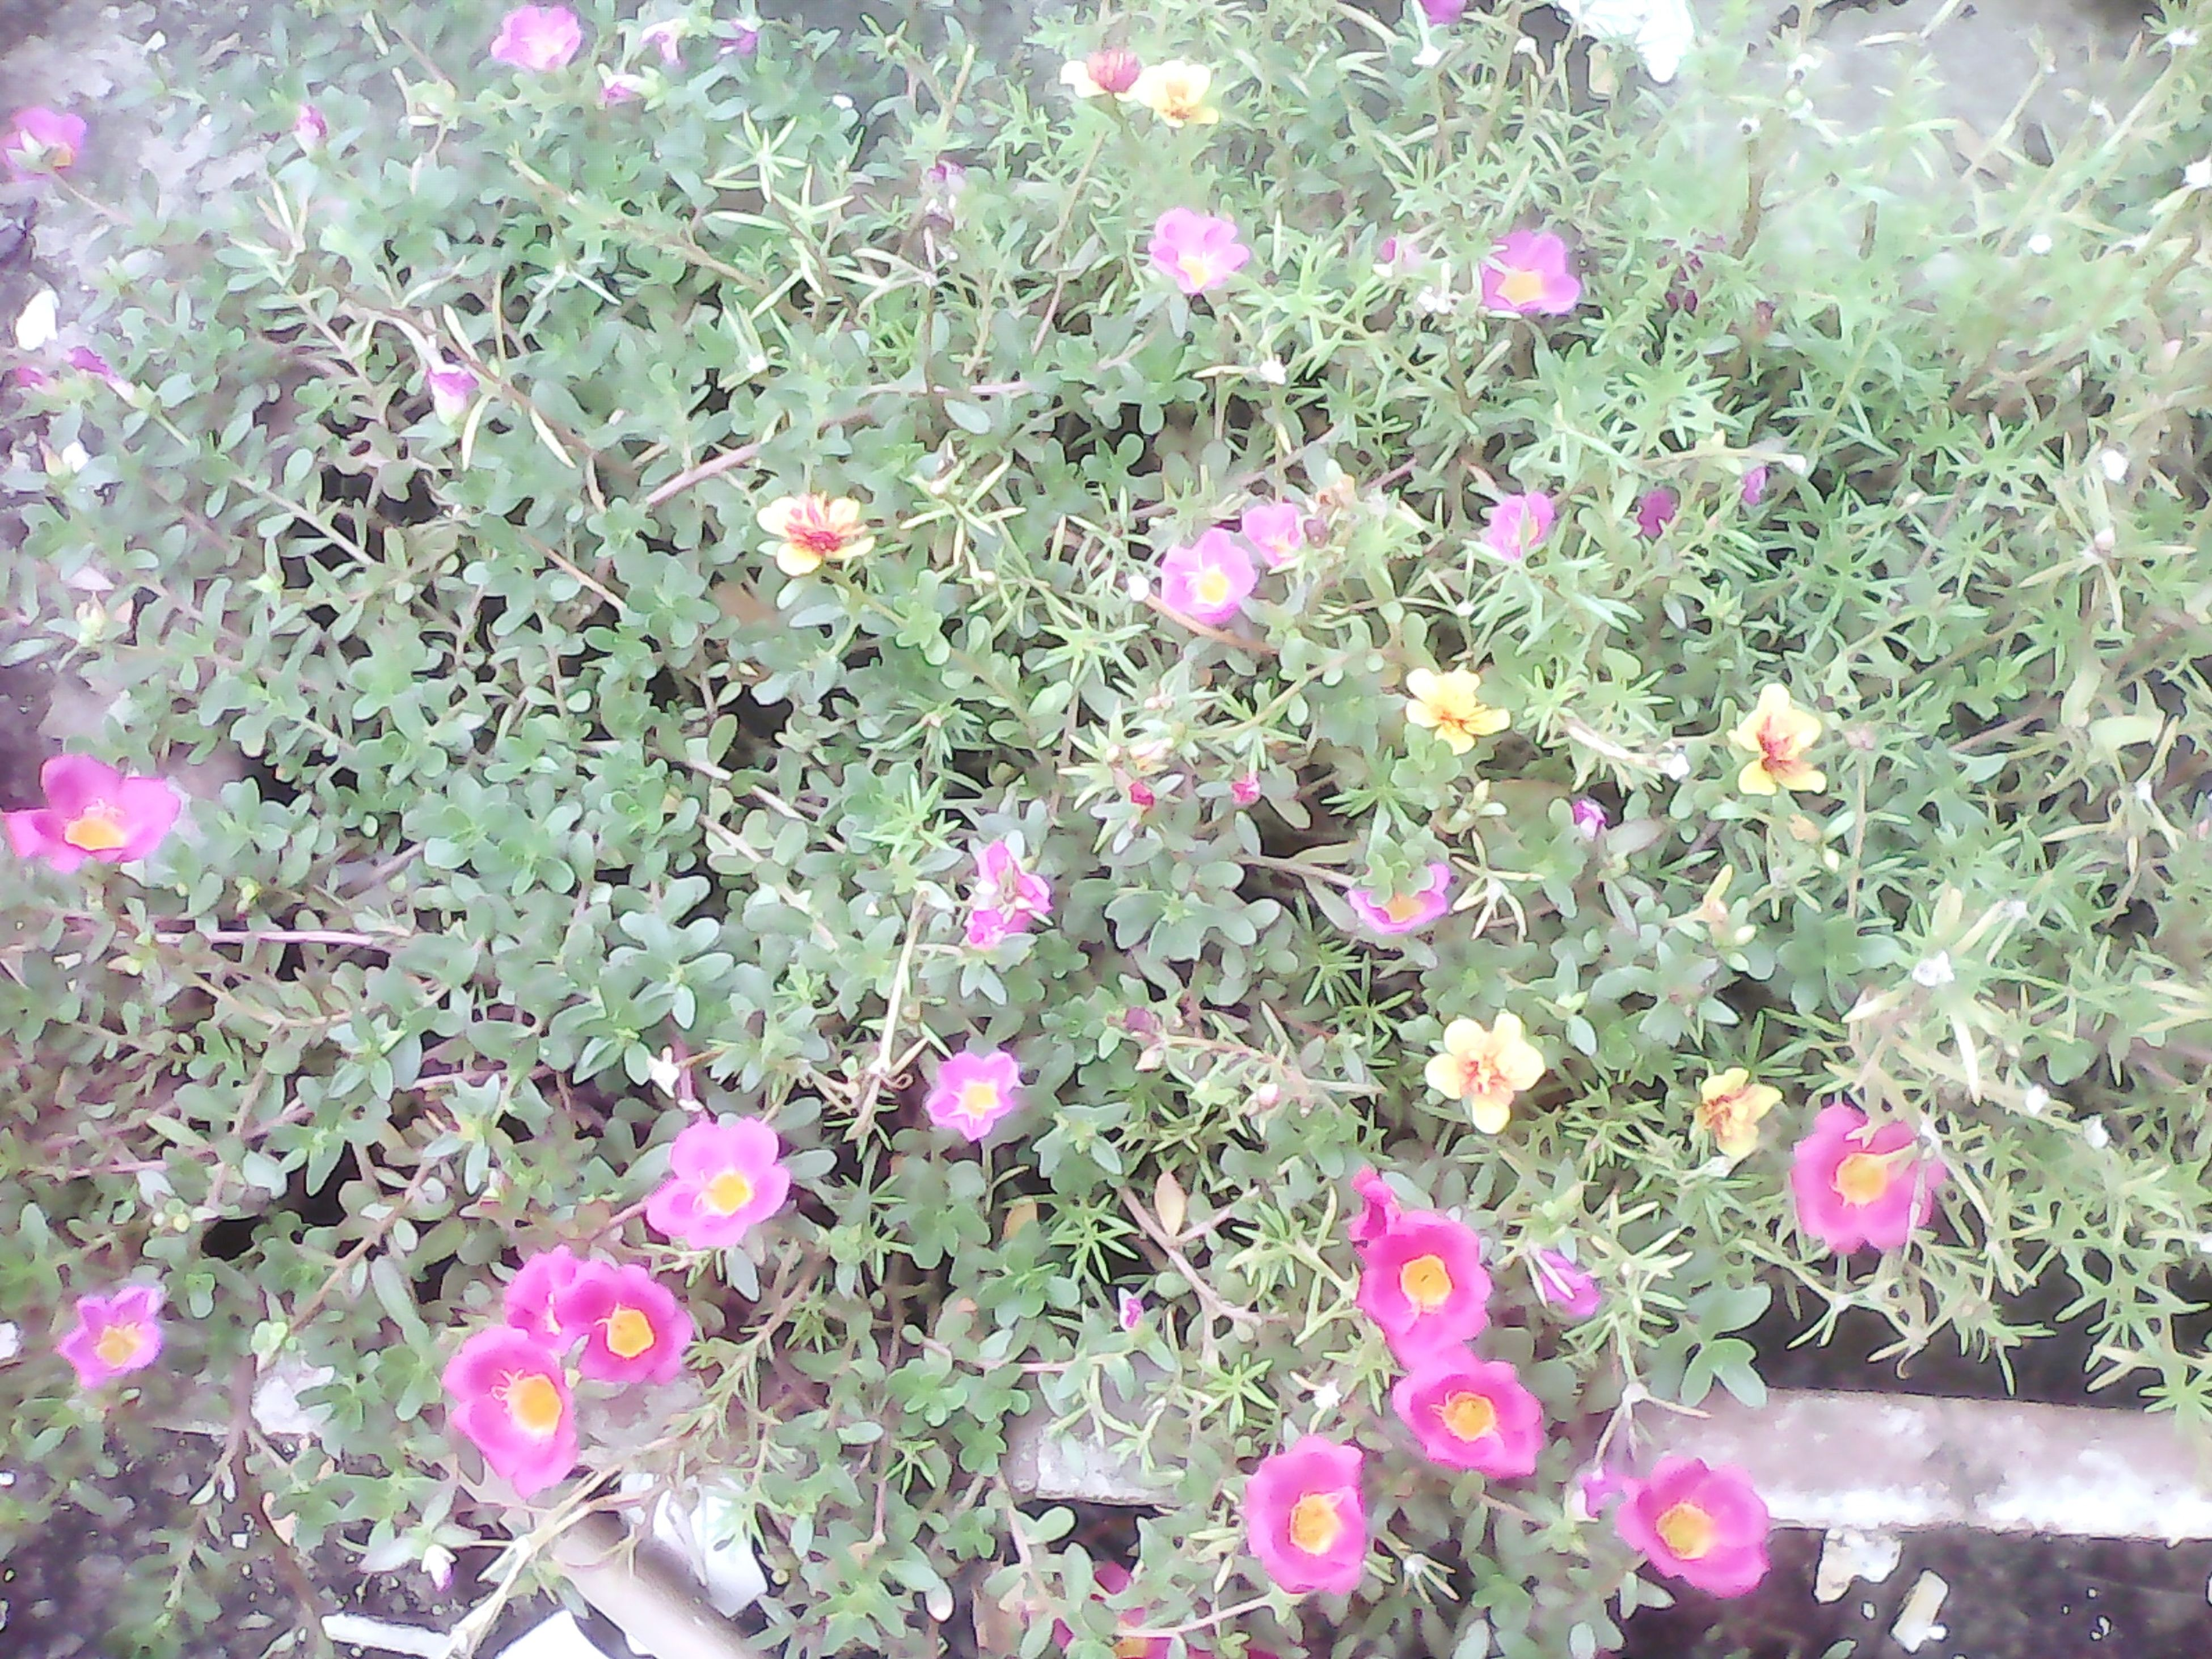 flower, growth, freshness, plant, fragility, beauty in nature, pink color, petal, nature, high angle view, blooming, in bloom, field, day, flower head, outdoors, no people, sunlight, park - man made space, leaf